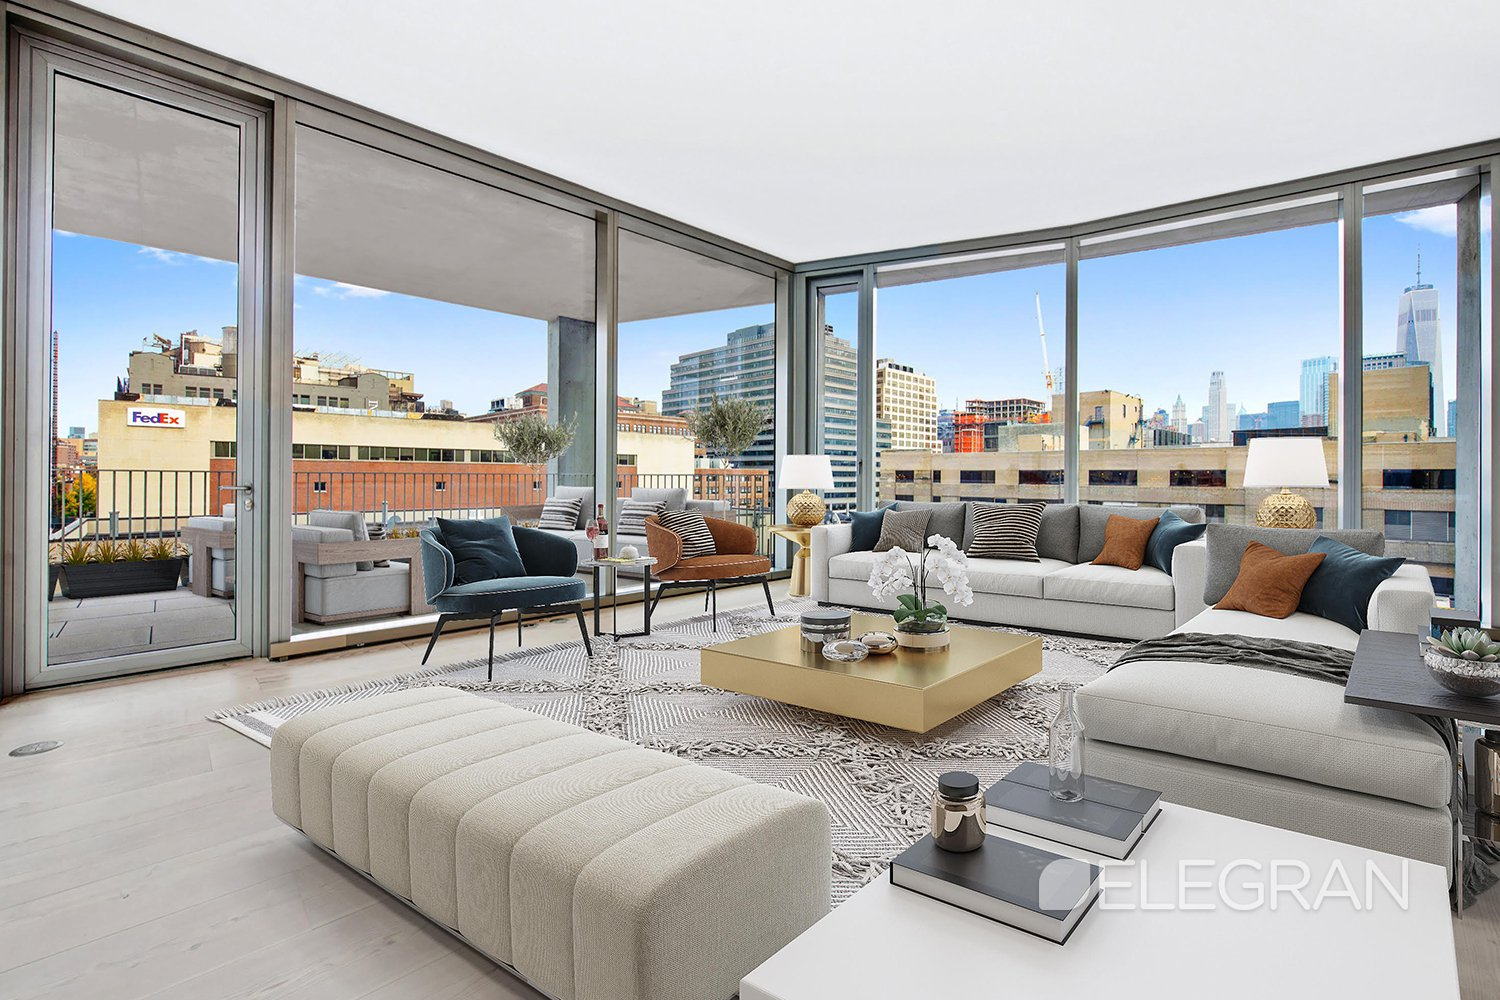 Private outdoor space, stunning, modern luxury finishes, world-class amenities, and more await you when you take advantage of this incredible opportunity to rent one of the last available waterfront homes in the West Village at 160 Leroy Street.This massive, 1728 square foot 2-bedroom, 2.5 bathroom home was meticulously designed by Herzog & de Meuron to be both timeless and to suit the needs of the modern New Yorker. The spacious layout boasts 12-inch wide-plank Scandinavian Larchwood floors throughout and a gracious living area that's flooded with natural light thanks to the 11-foot floor-to-ceiling windows featured on the triple custom pane curtain wall with UVB/UVA protected glass - the perfect space for entertaining and displaying fine art. Continue into the bright, airy great room that leads to the 200 SF terrace, where you can have the type of picture-perfect NYC mornings many only dream of, enjoying a cup of coffee while overlooking the Madison Cox-designed private park.The open chef's kitchen, crafted by Bulthaup, features Larchwood cabinets, stunning Sivec marble slab countertops and backsplash, and a charming breakfast bar. The fully integrated appliances include a Sub-Zero refrigerator, Wolf oven, Gaggenau cooktop, and Miele dishwasher, Sub-Zero freezer and wine refrigerator, Wolf steam oven and integrated Wolf coffee/espresso machine. Everything you need to craft the perfect meal, right at your fingertips.The master bedroom suite is the perfect place for rest, relaxation, and rejuvenation. It boasts spectacular river views, a dressing room, and a lavish, spa-like master bathroom is covered in stunning Sivec marble and features radiant heated floors, a deep soaking tub, a double vanity, and a large stall shower. The spacious second bedroom also features a large dressing area and it's own luxurious, travertine-clad en-suite bathroom. For guests, there is a lovely powder room boasting floor-to-ceiling Scandinavian Larchwood and a custom vanity. This remarka